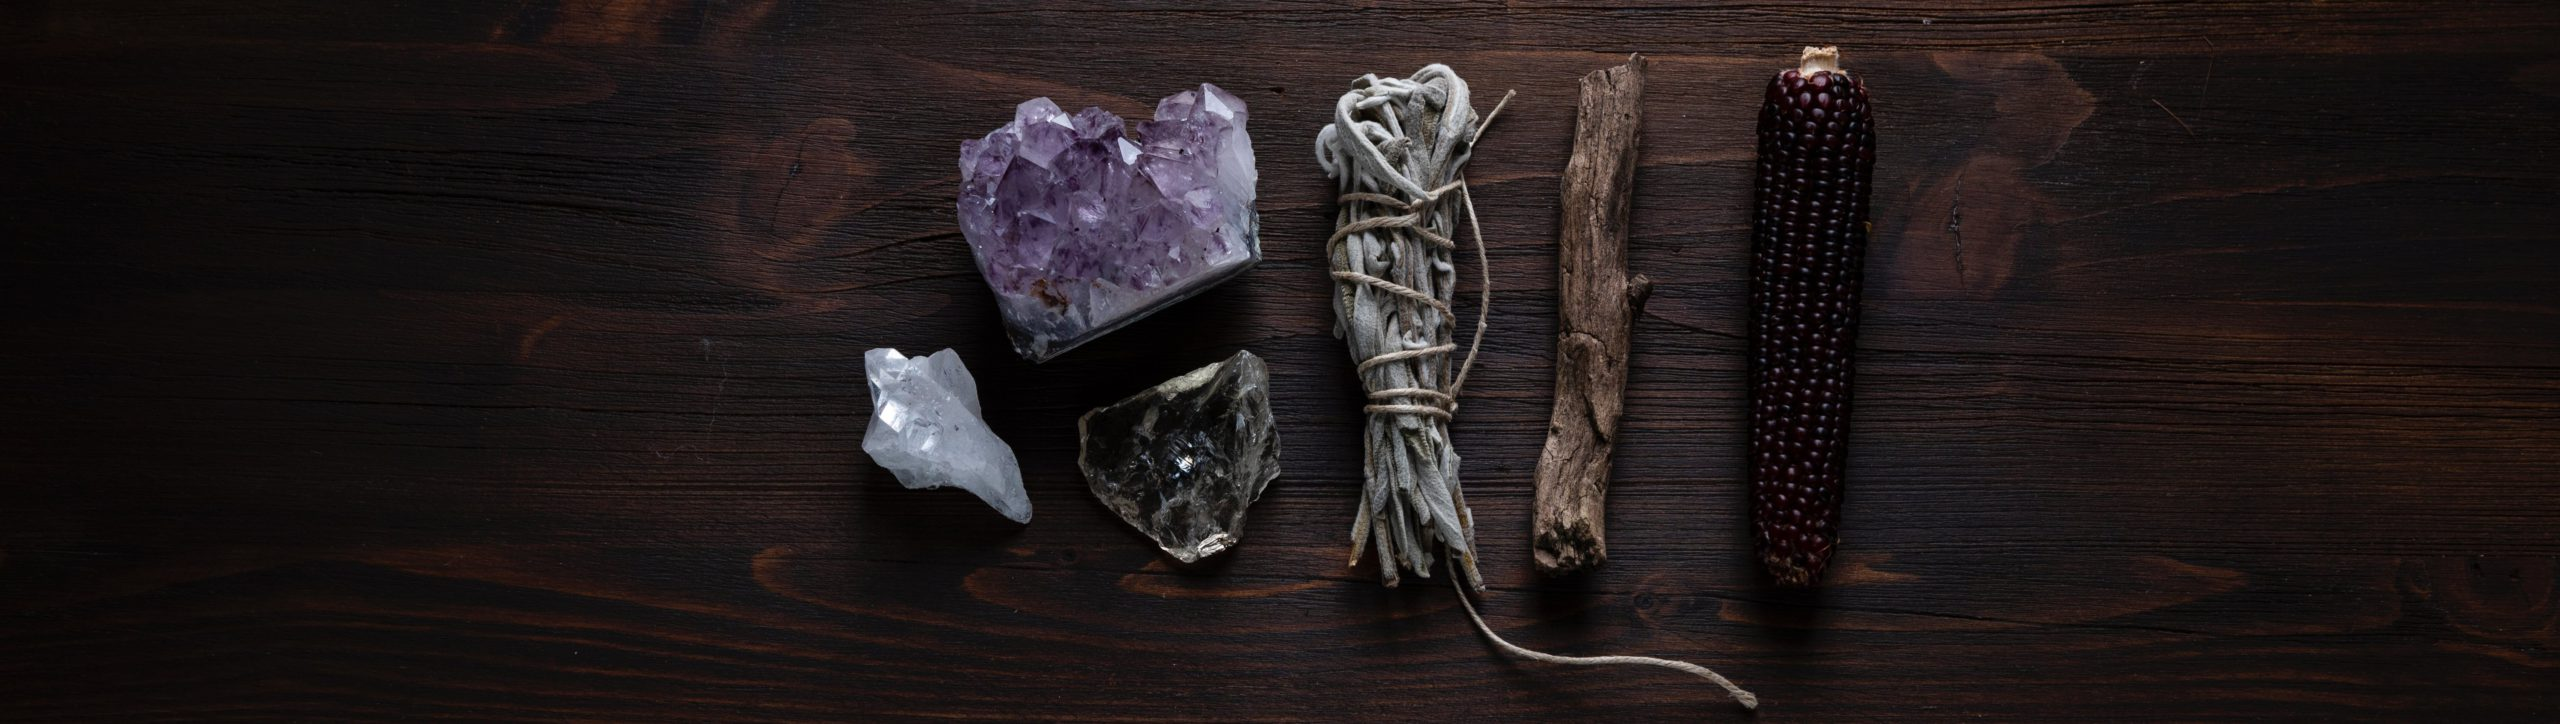 White Sage Smudge Sticks - crystals